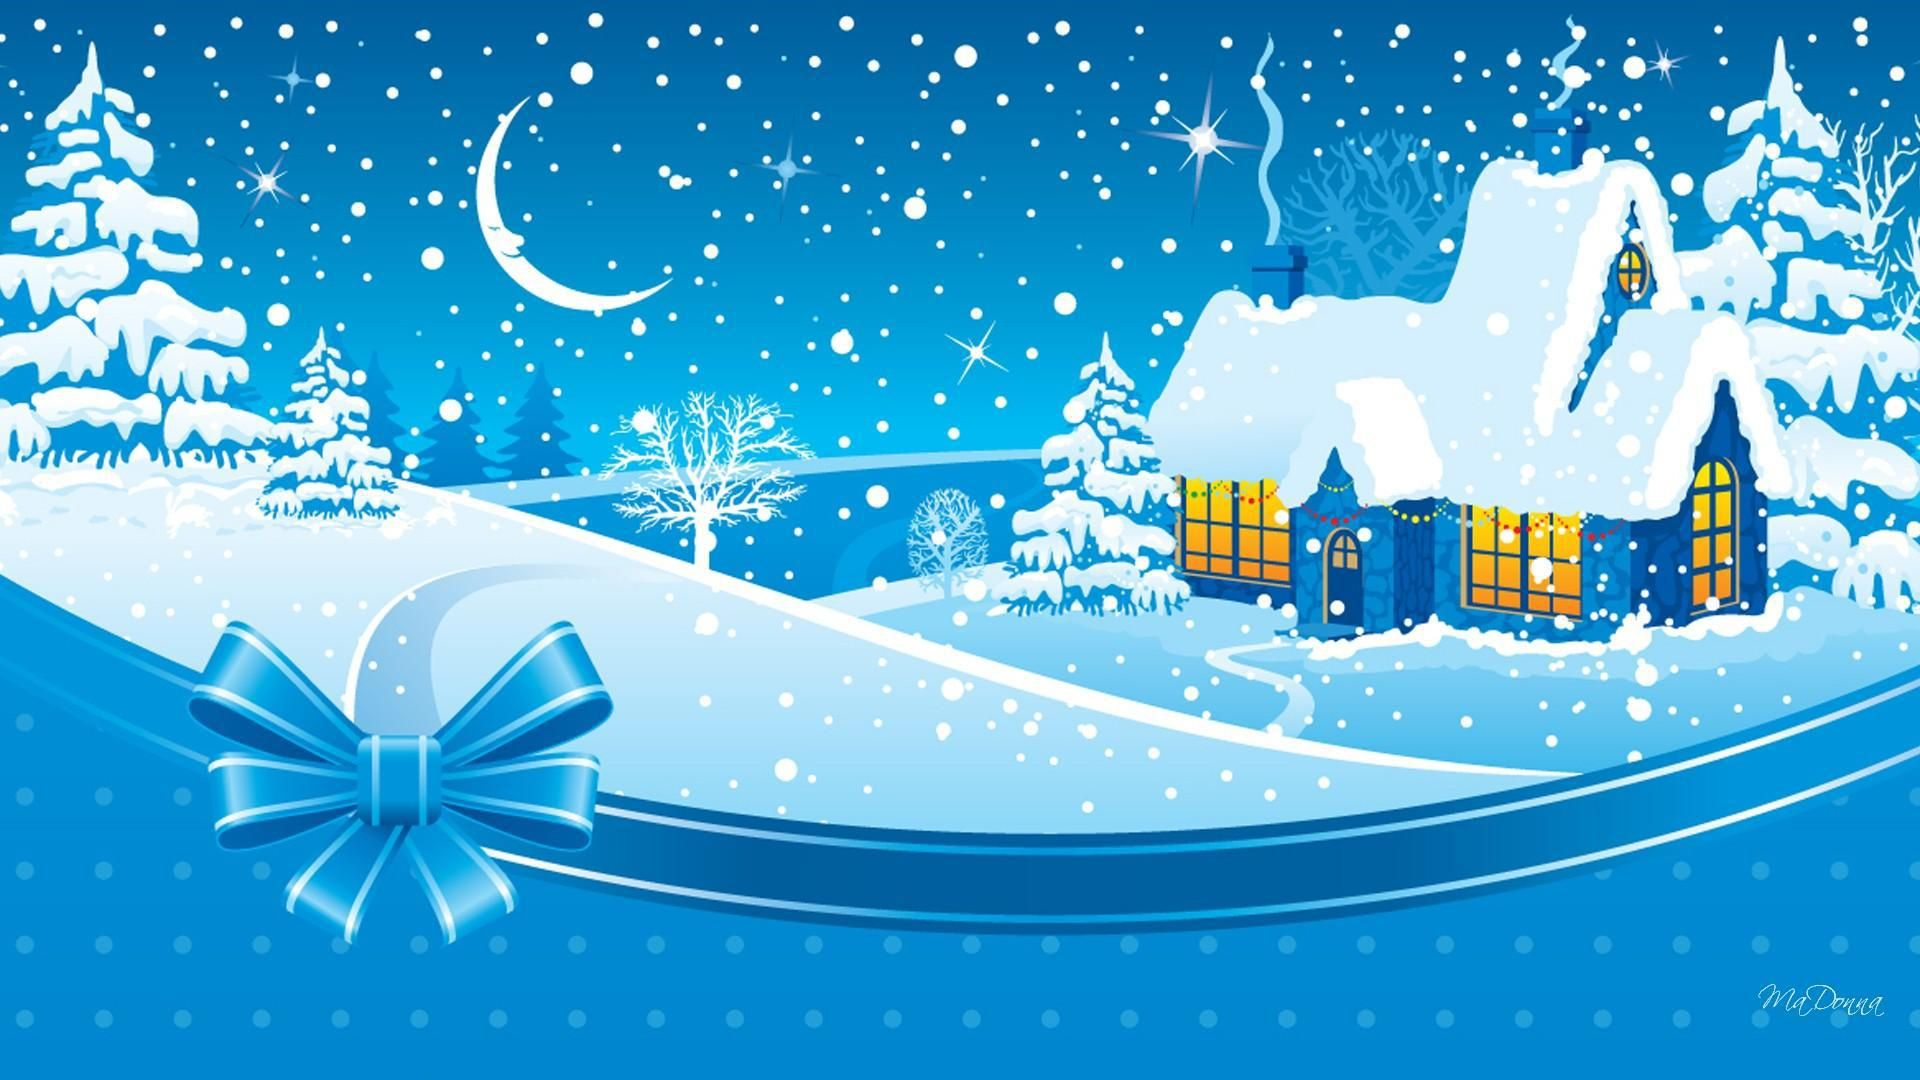 New Year Different download free wallpaper image search